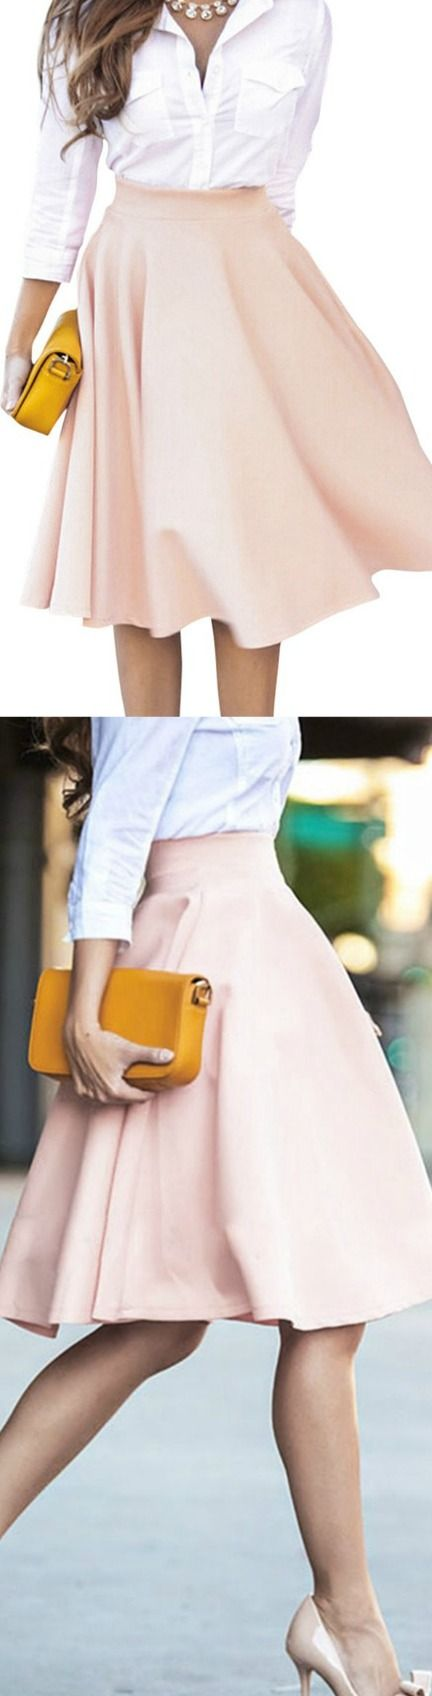 Flared High Waist Midi Skirt! Click The Image To Buy It Now or Tag Someone You Want To Buy This For. #MidiSkirt